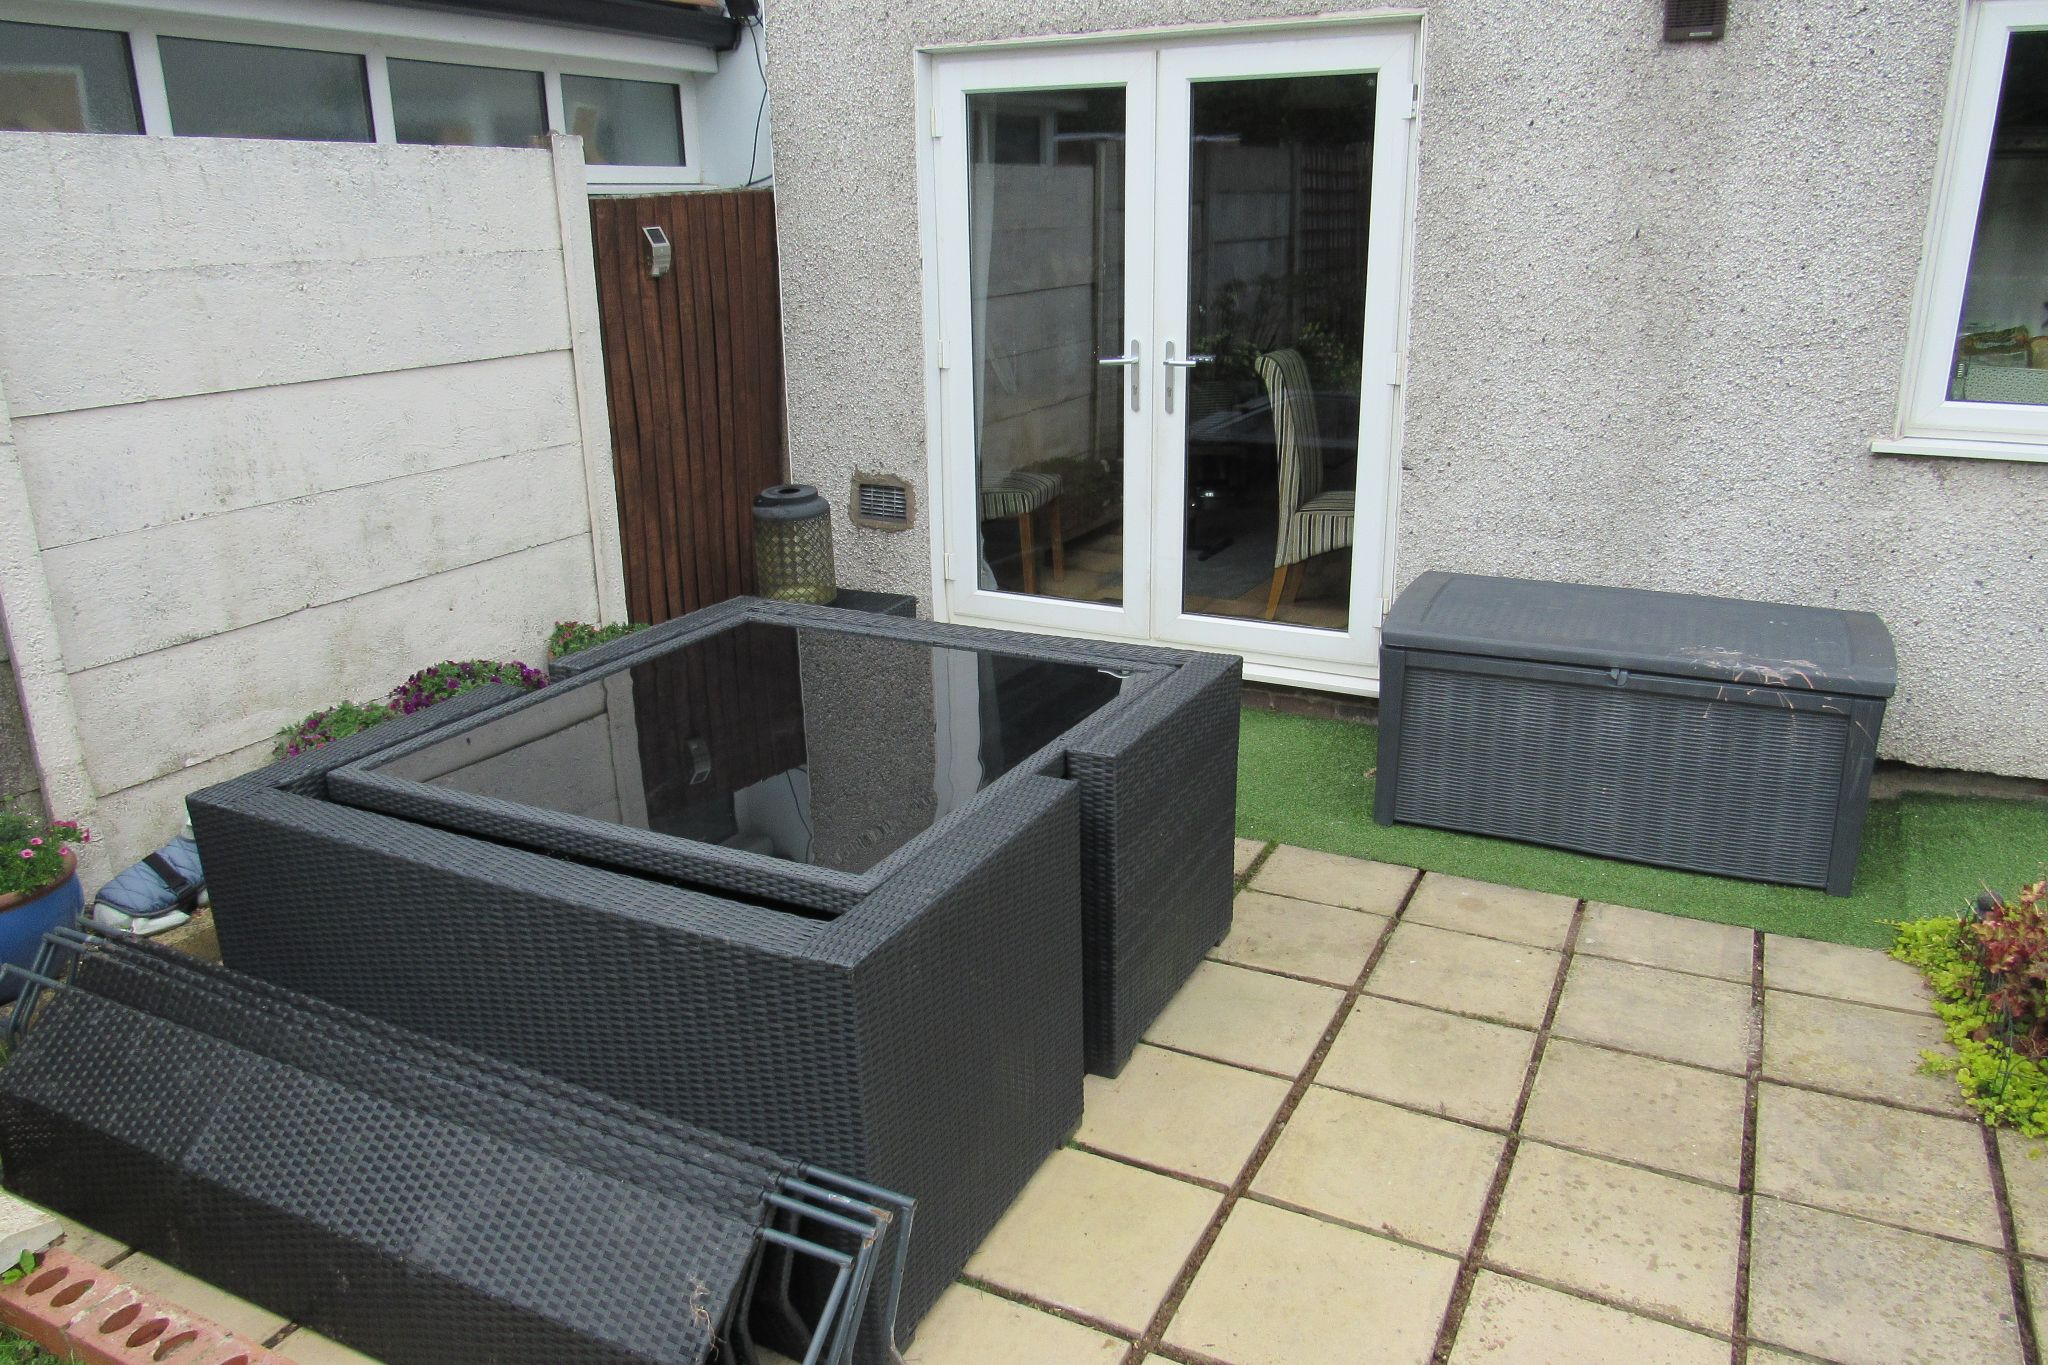 3 bedroom semi-detached house SSTC in Manchester - Photograph 11.